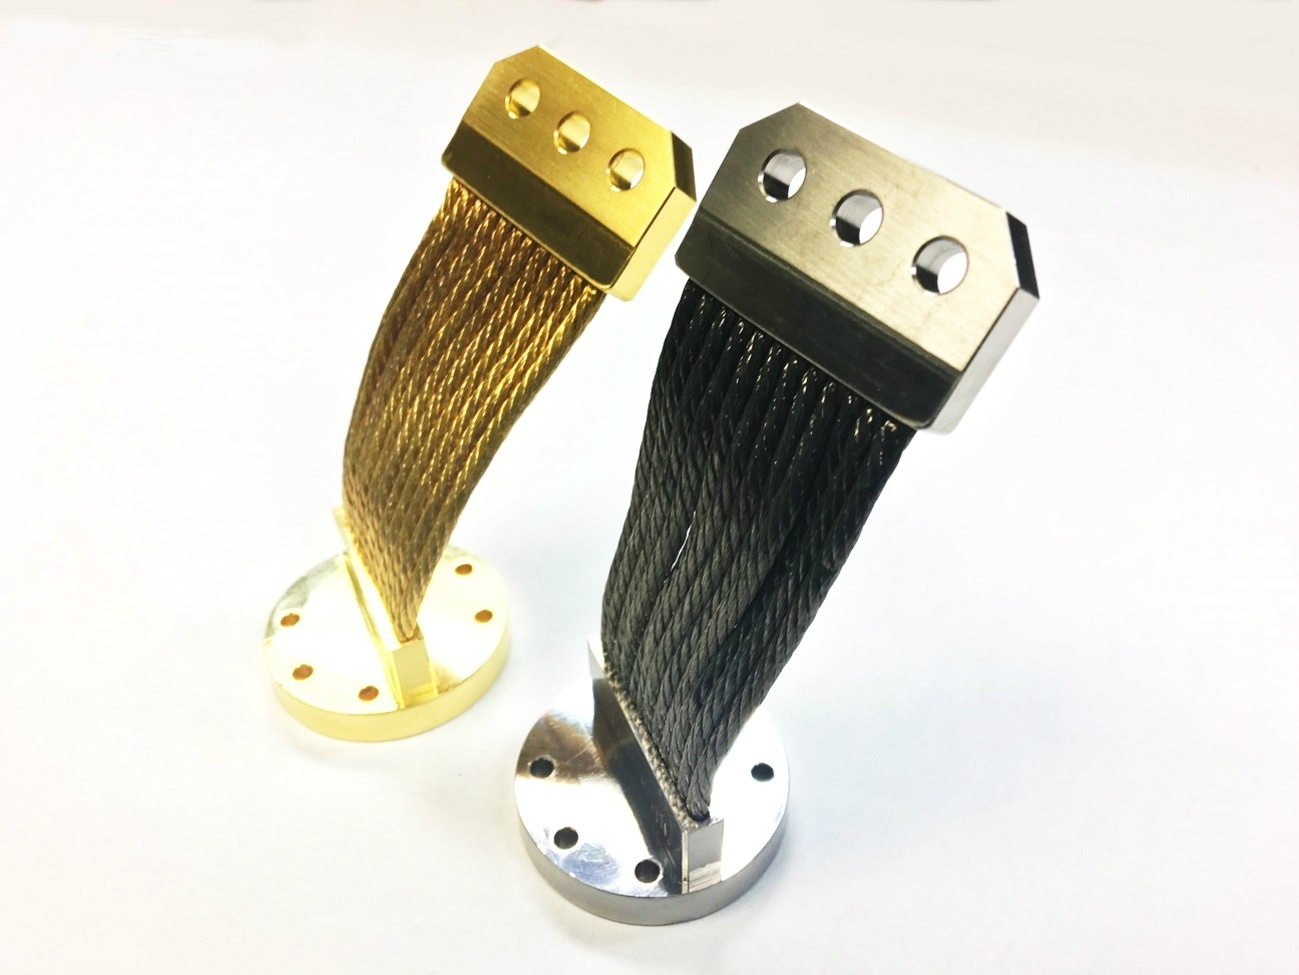 Nickel and Gold Plated Cryocooler Series Thermal Straps/Links